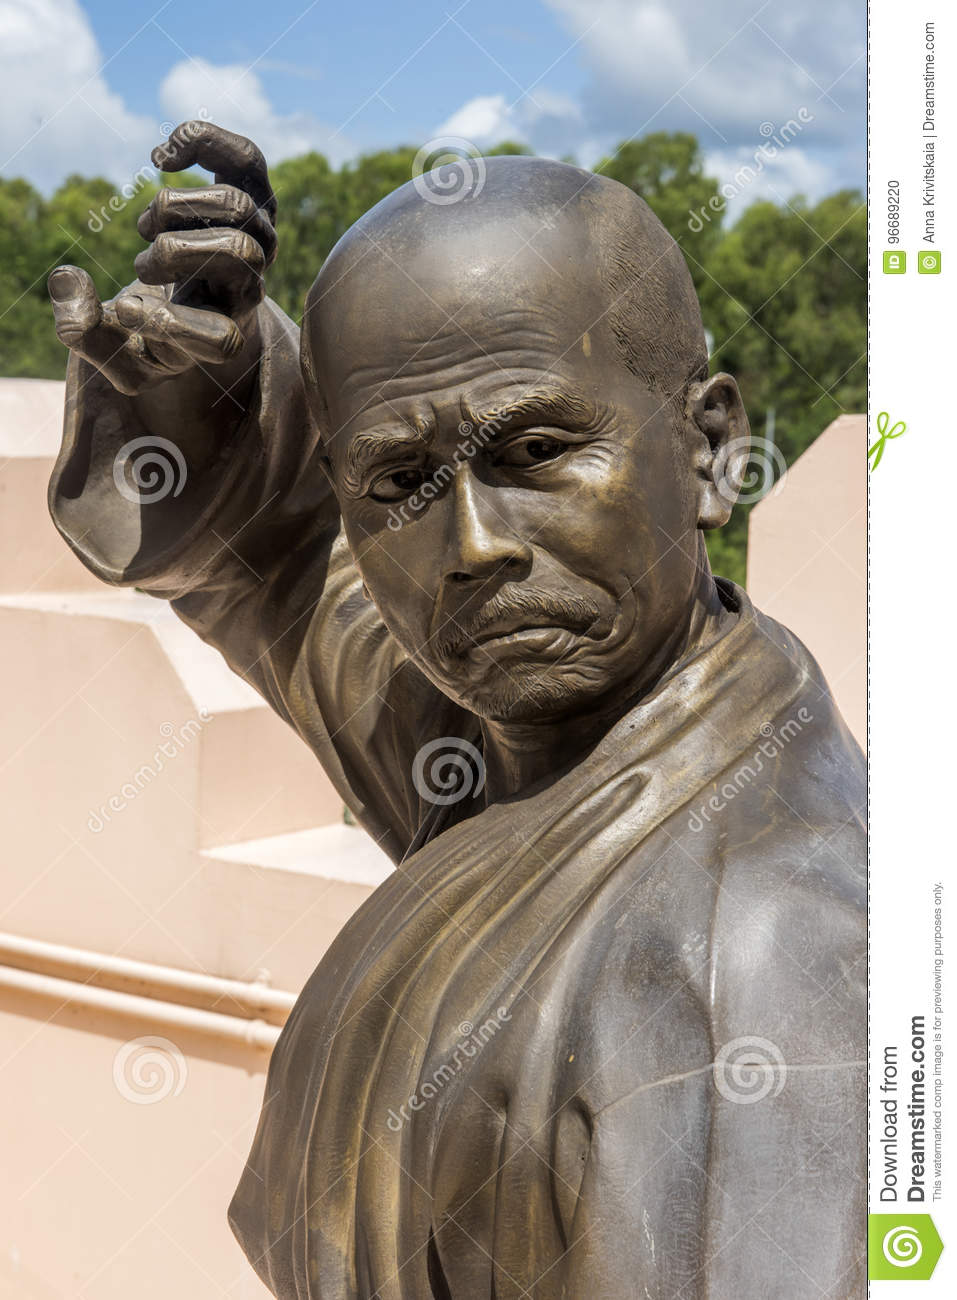 Statues of Chinese Shaolin monks